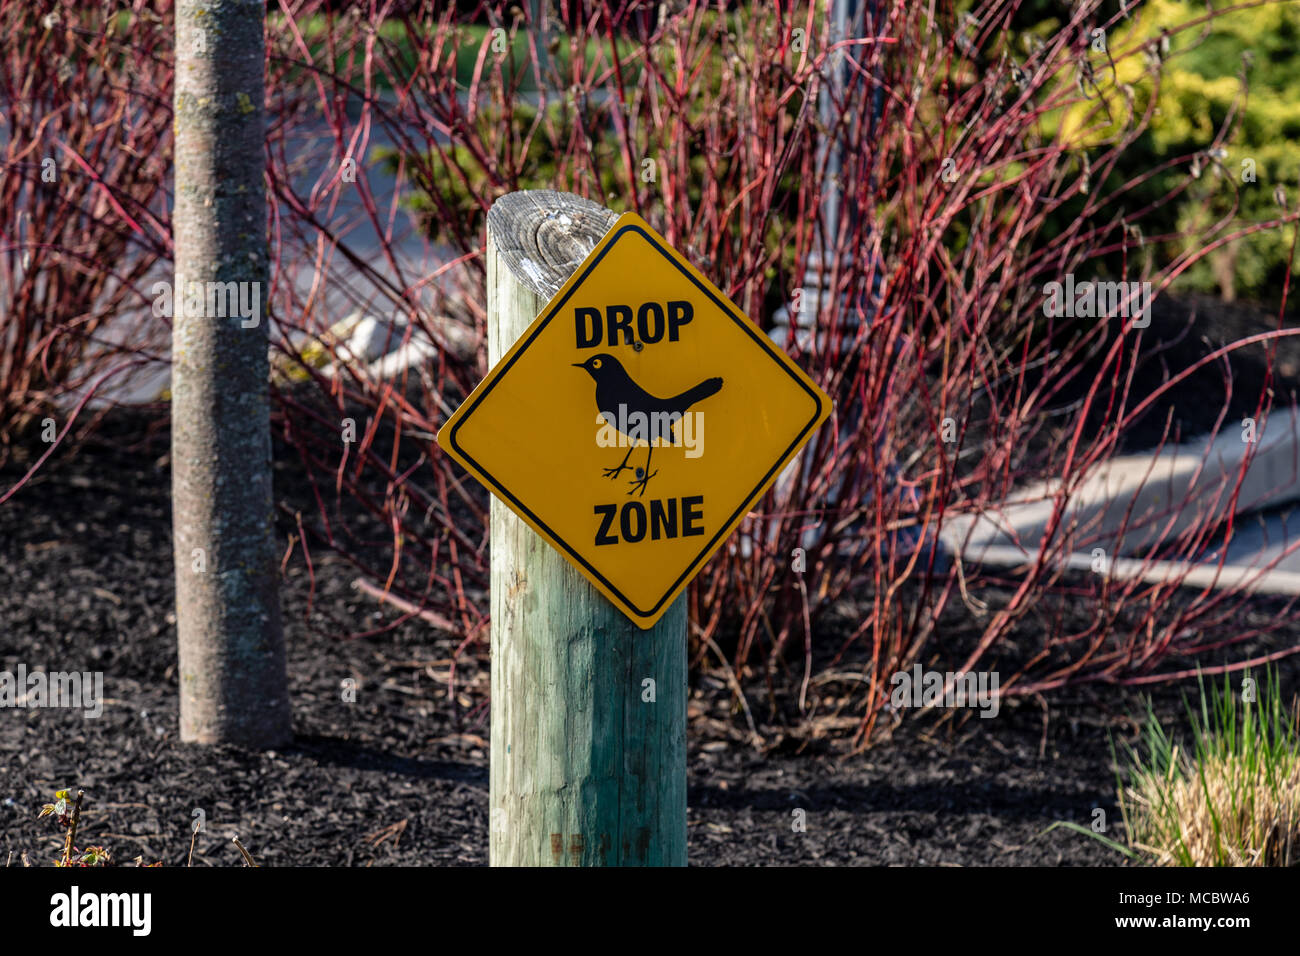 A drop zone sign warning of bird droppings in the immediate area. - Stock Image